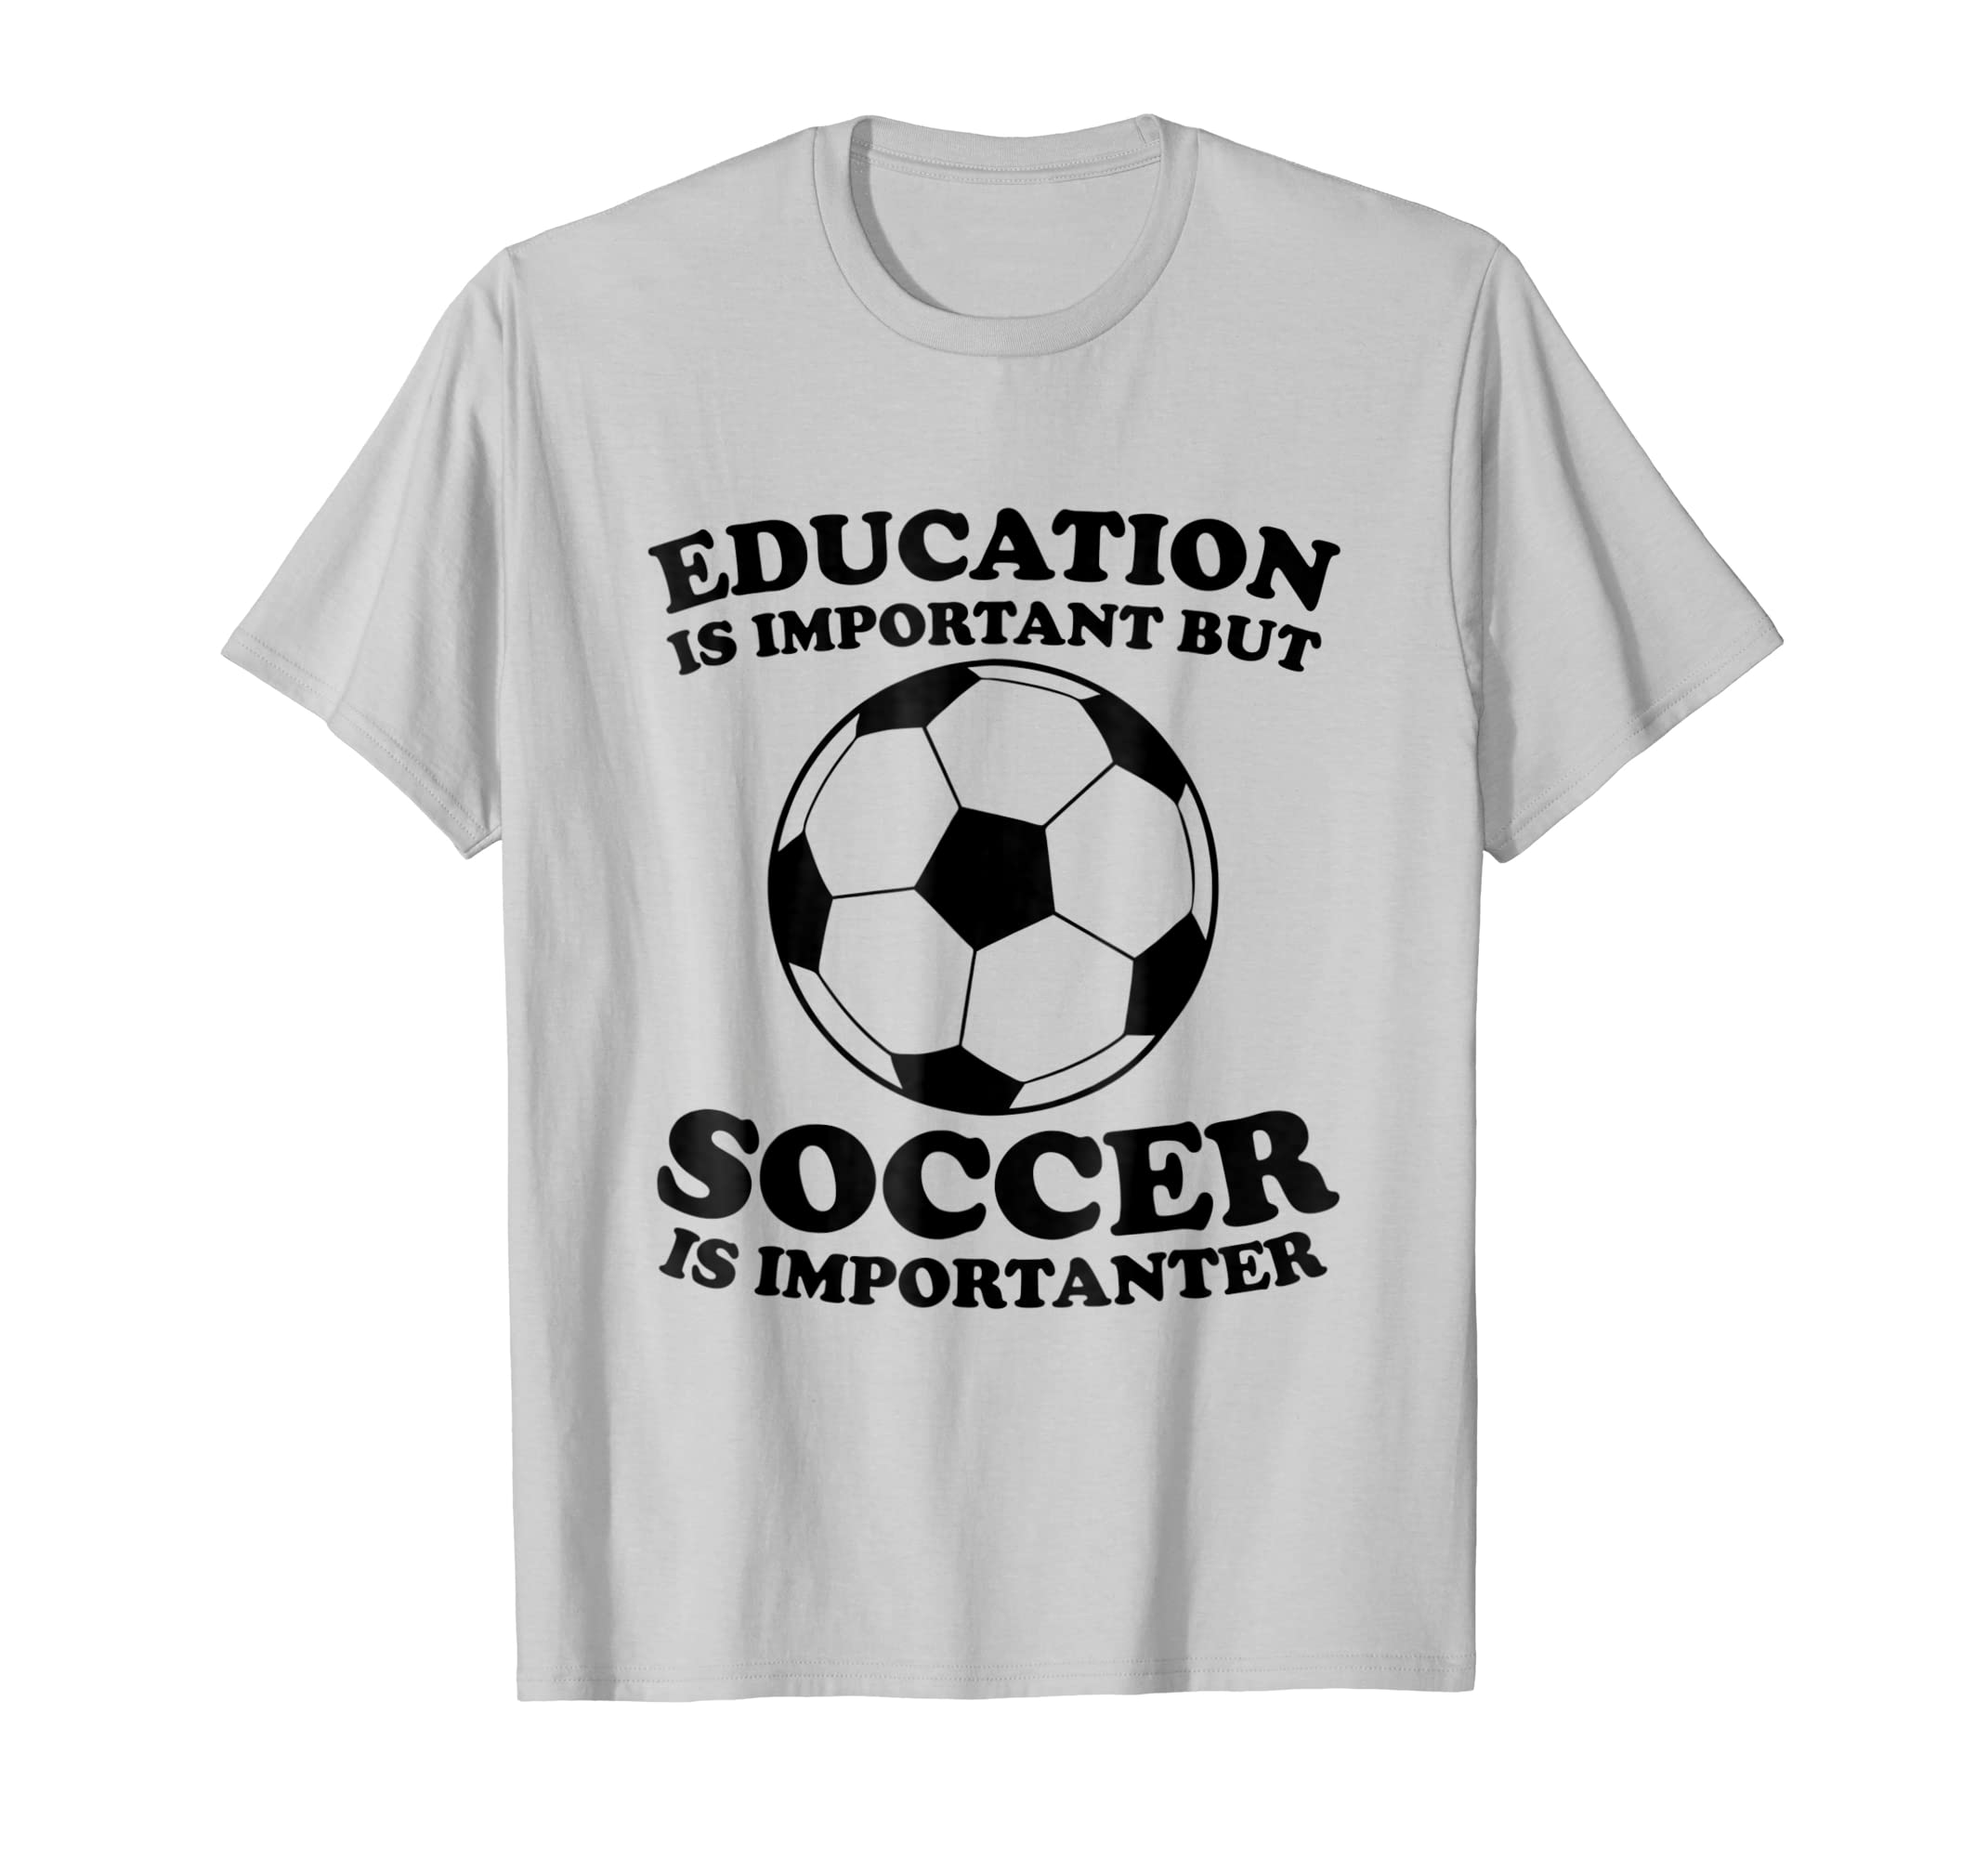 49a7346507d Amazon.com: Education Is Important But Soccer Is Importanter Funny Shirt:  Clothing